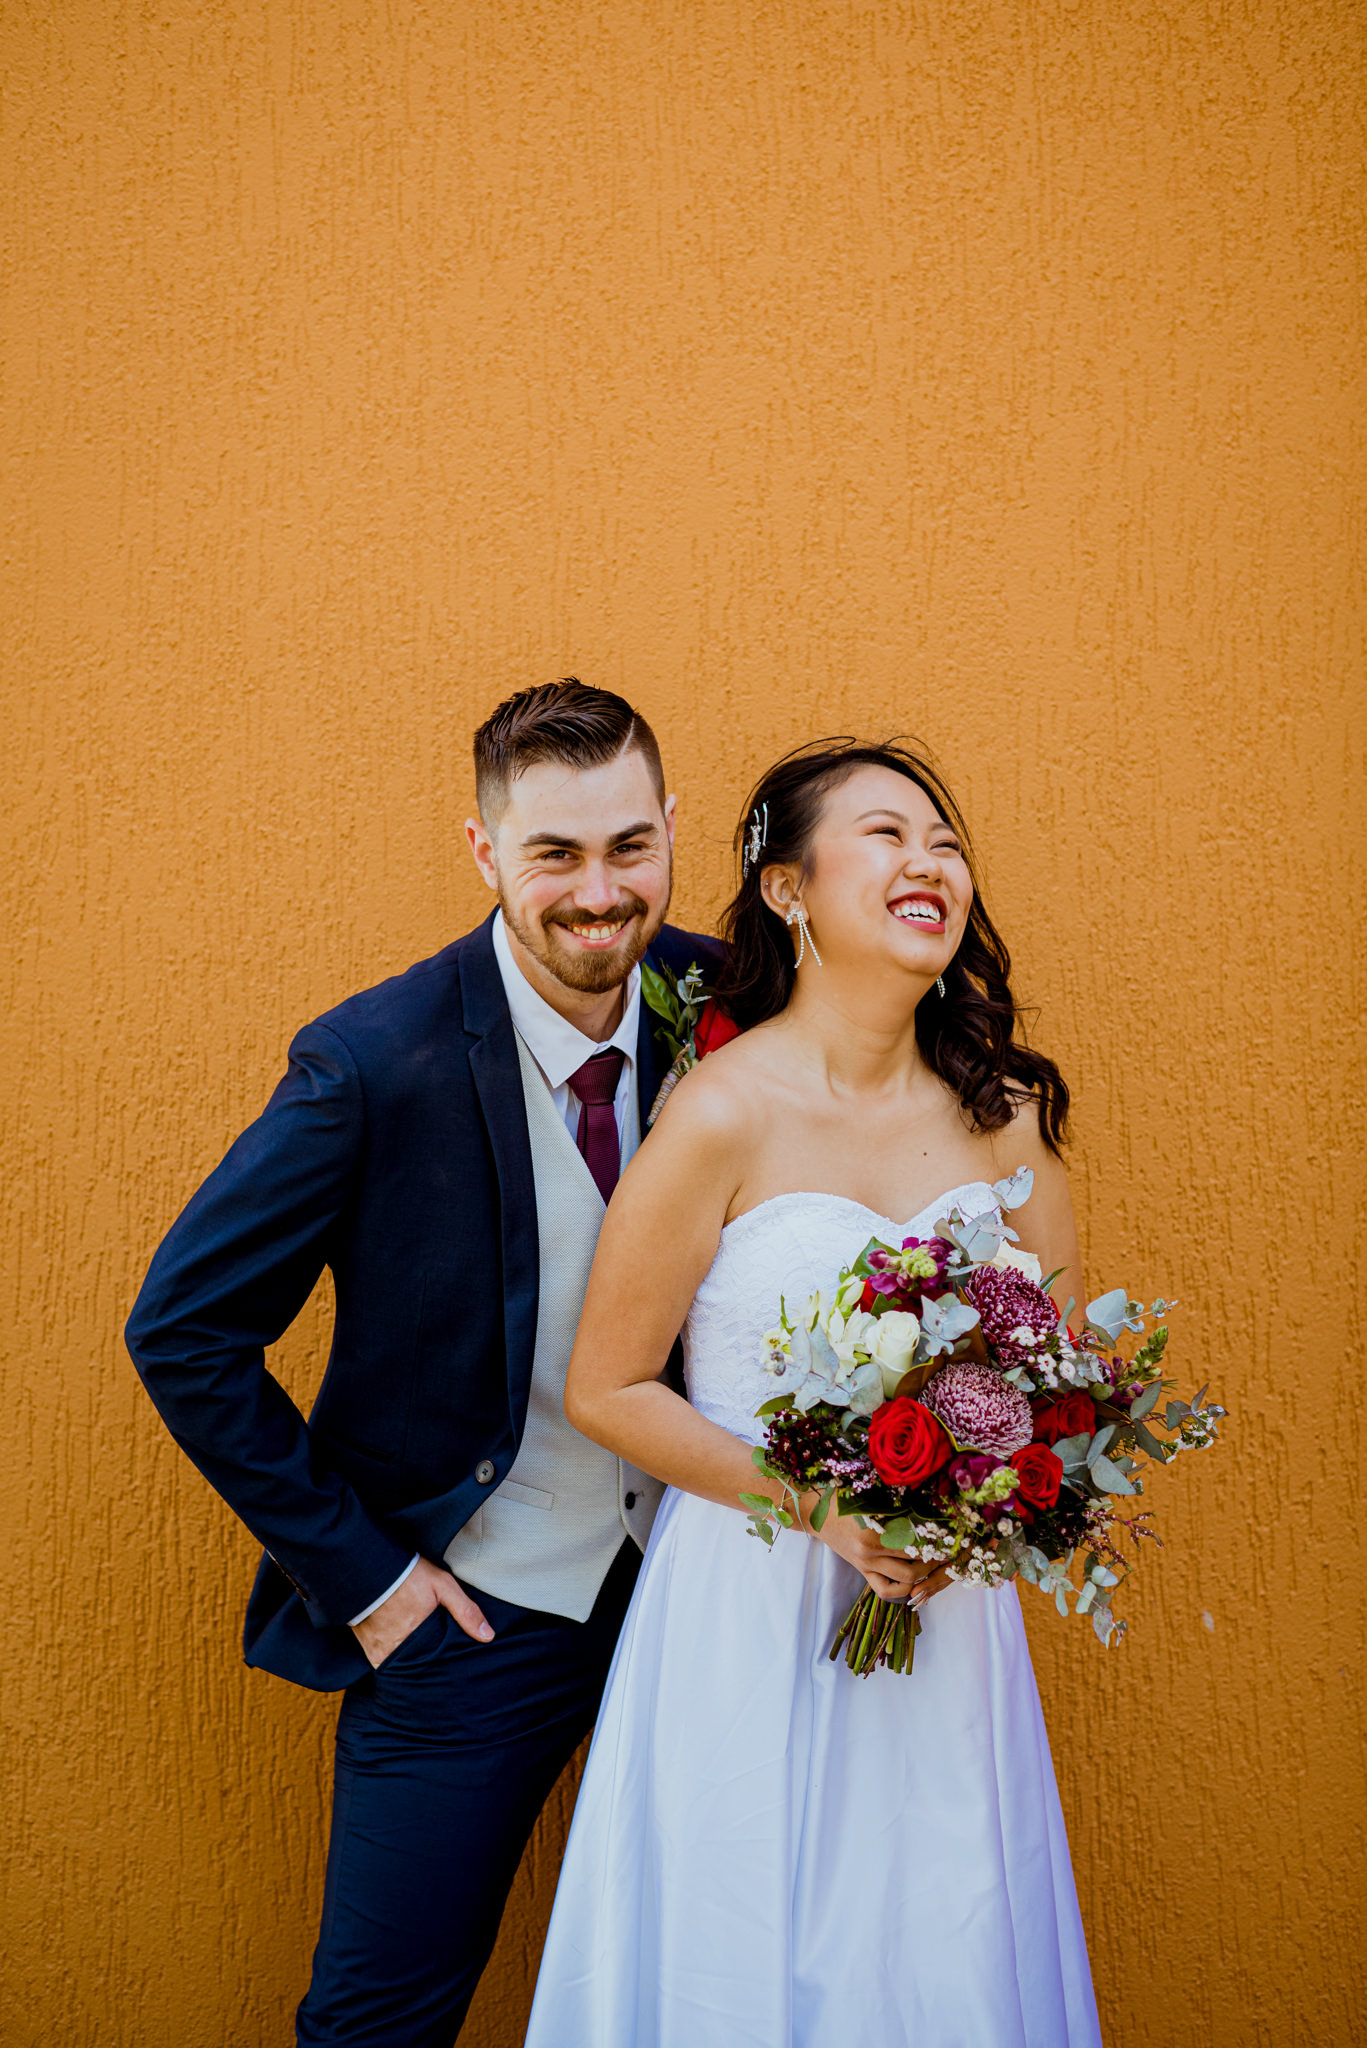 A young bride and groom laugh in front of an orange wall